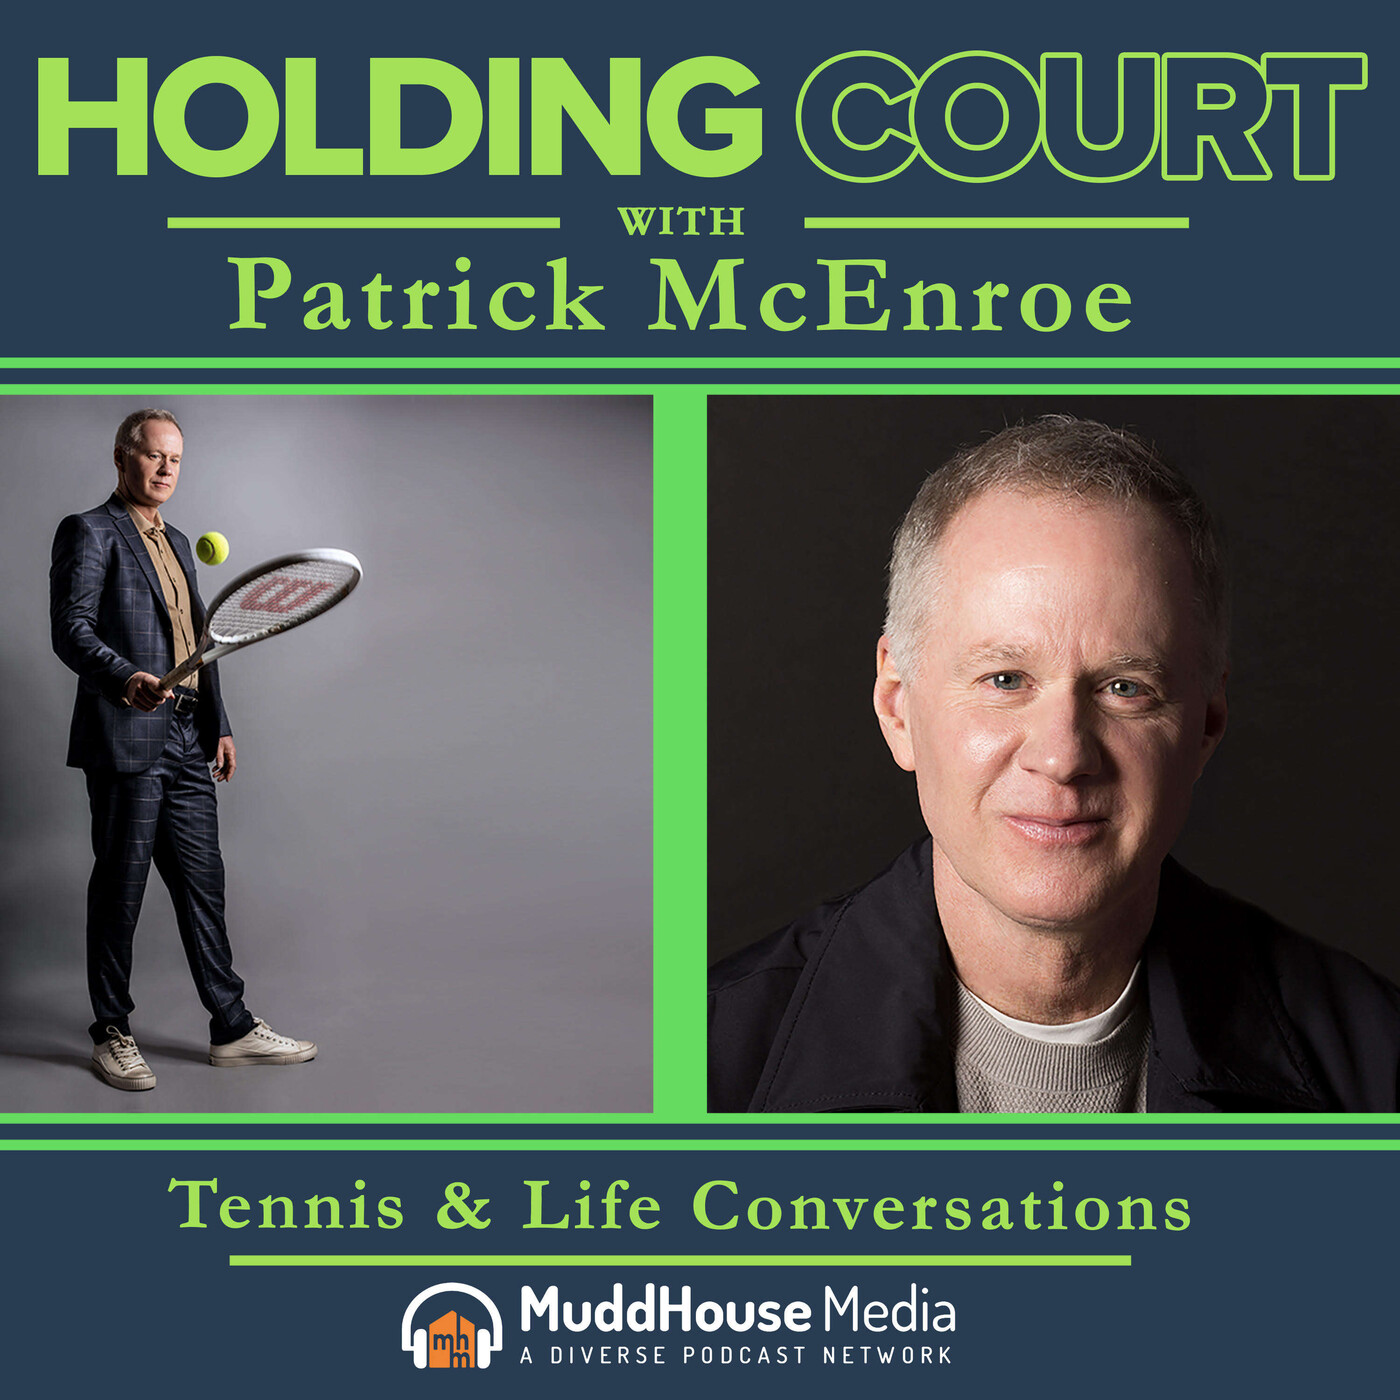 US OPEN Preview on this **SPECIAL** Episode of Holding Court with Patrick McEnroe